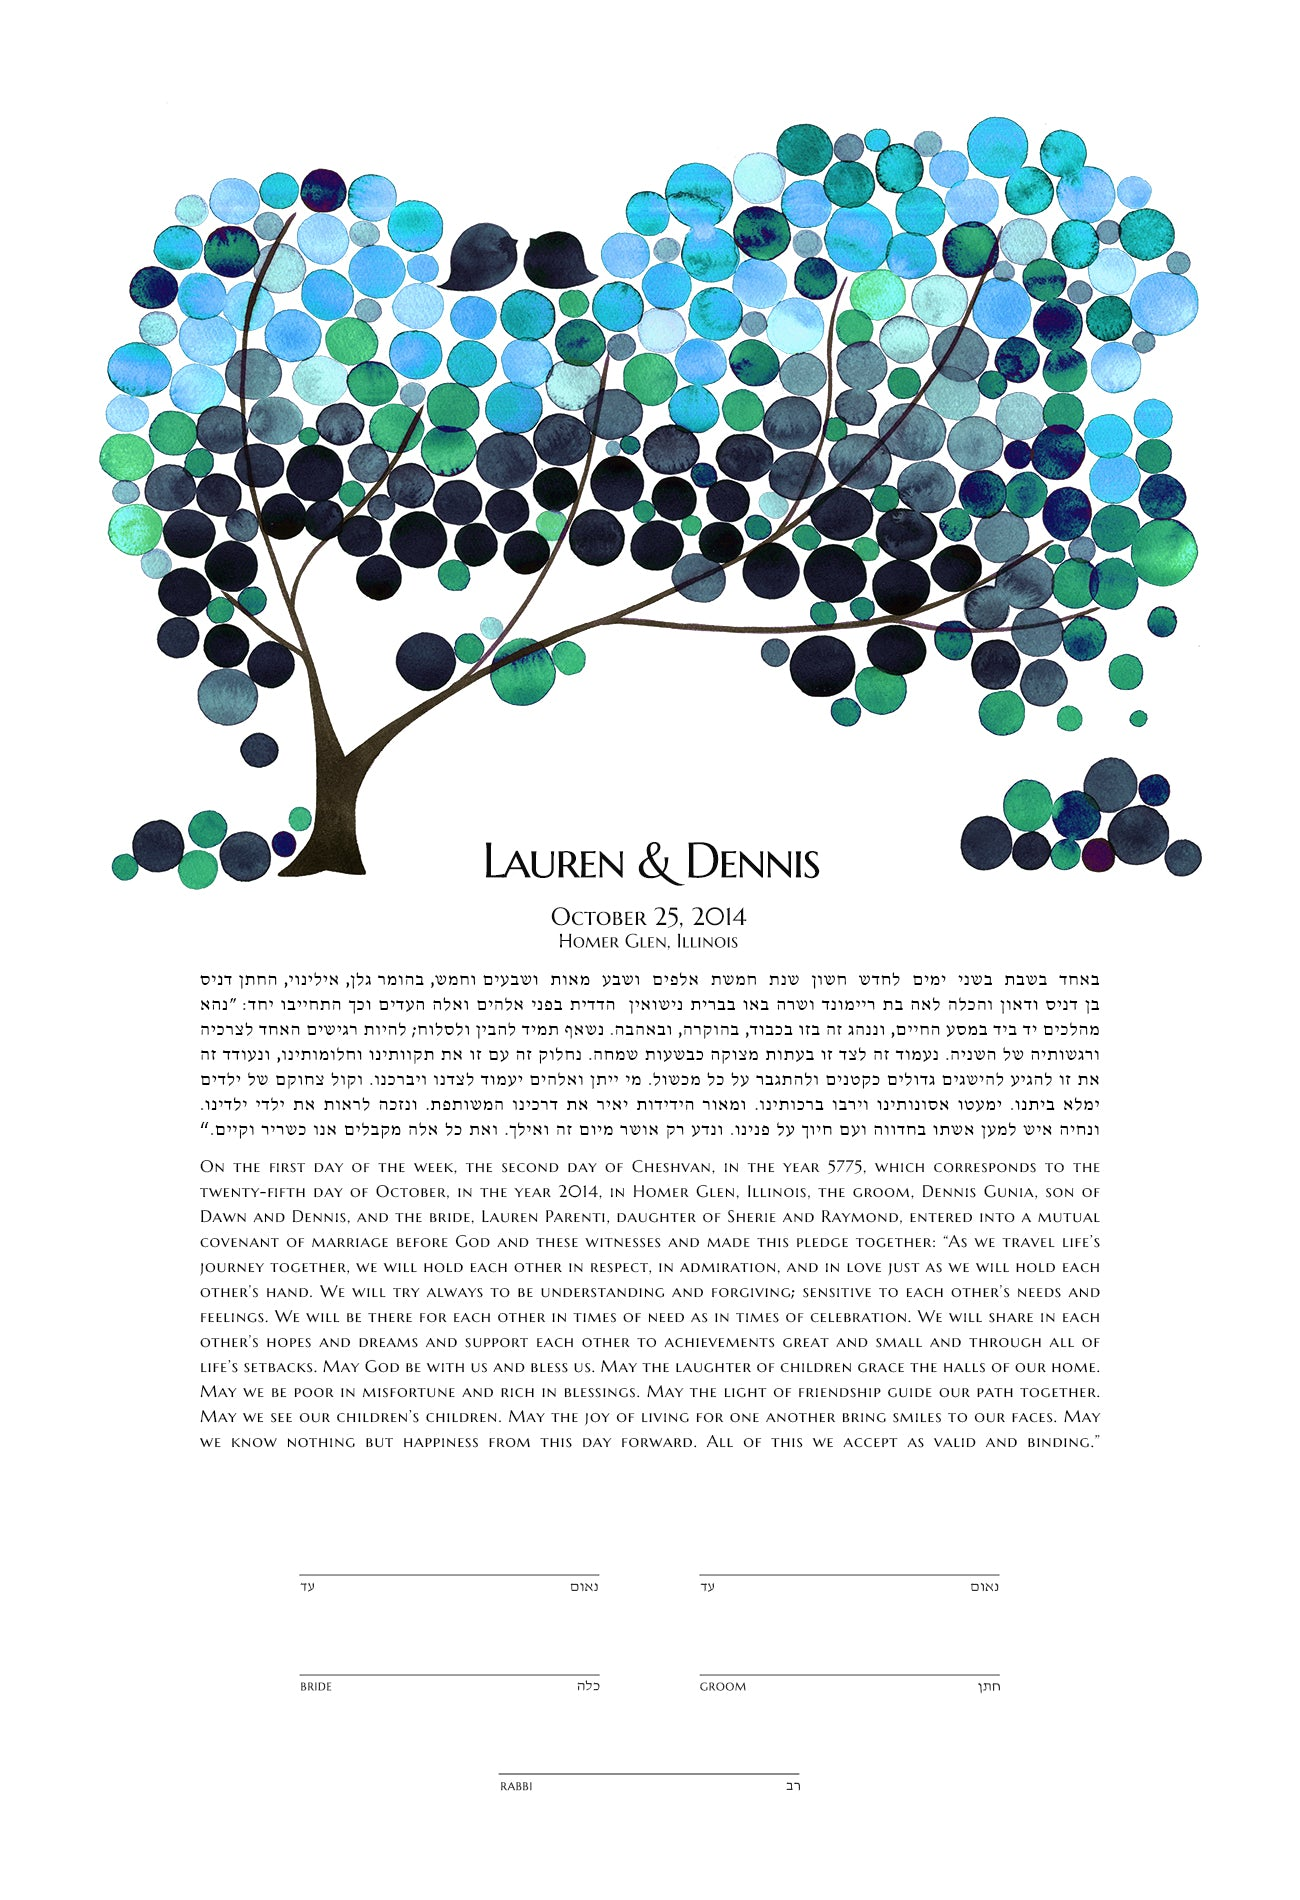 OnceUponaPaper Giclée Ketubah - Reviewed by Lauren Parenti